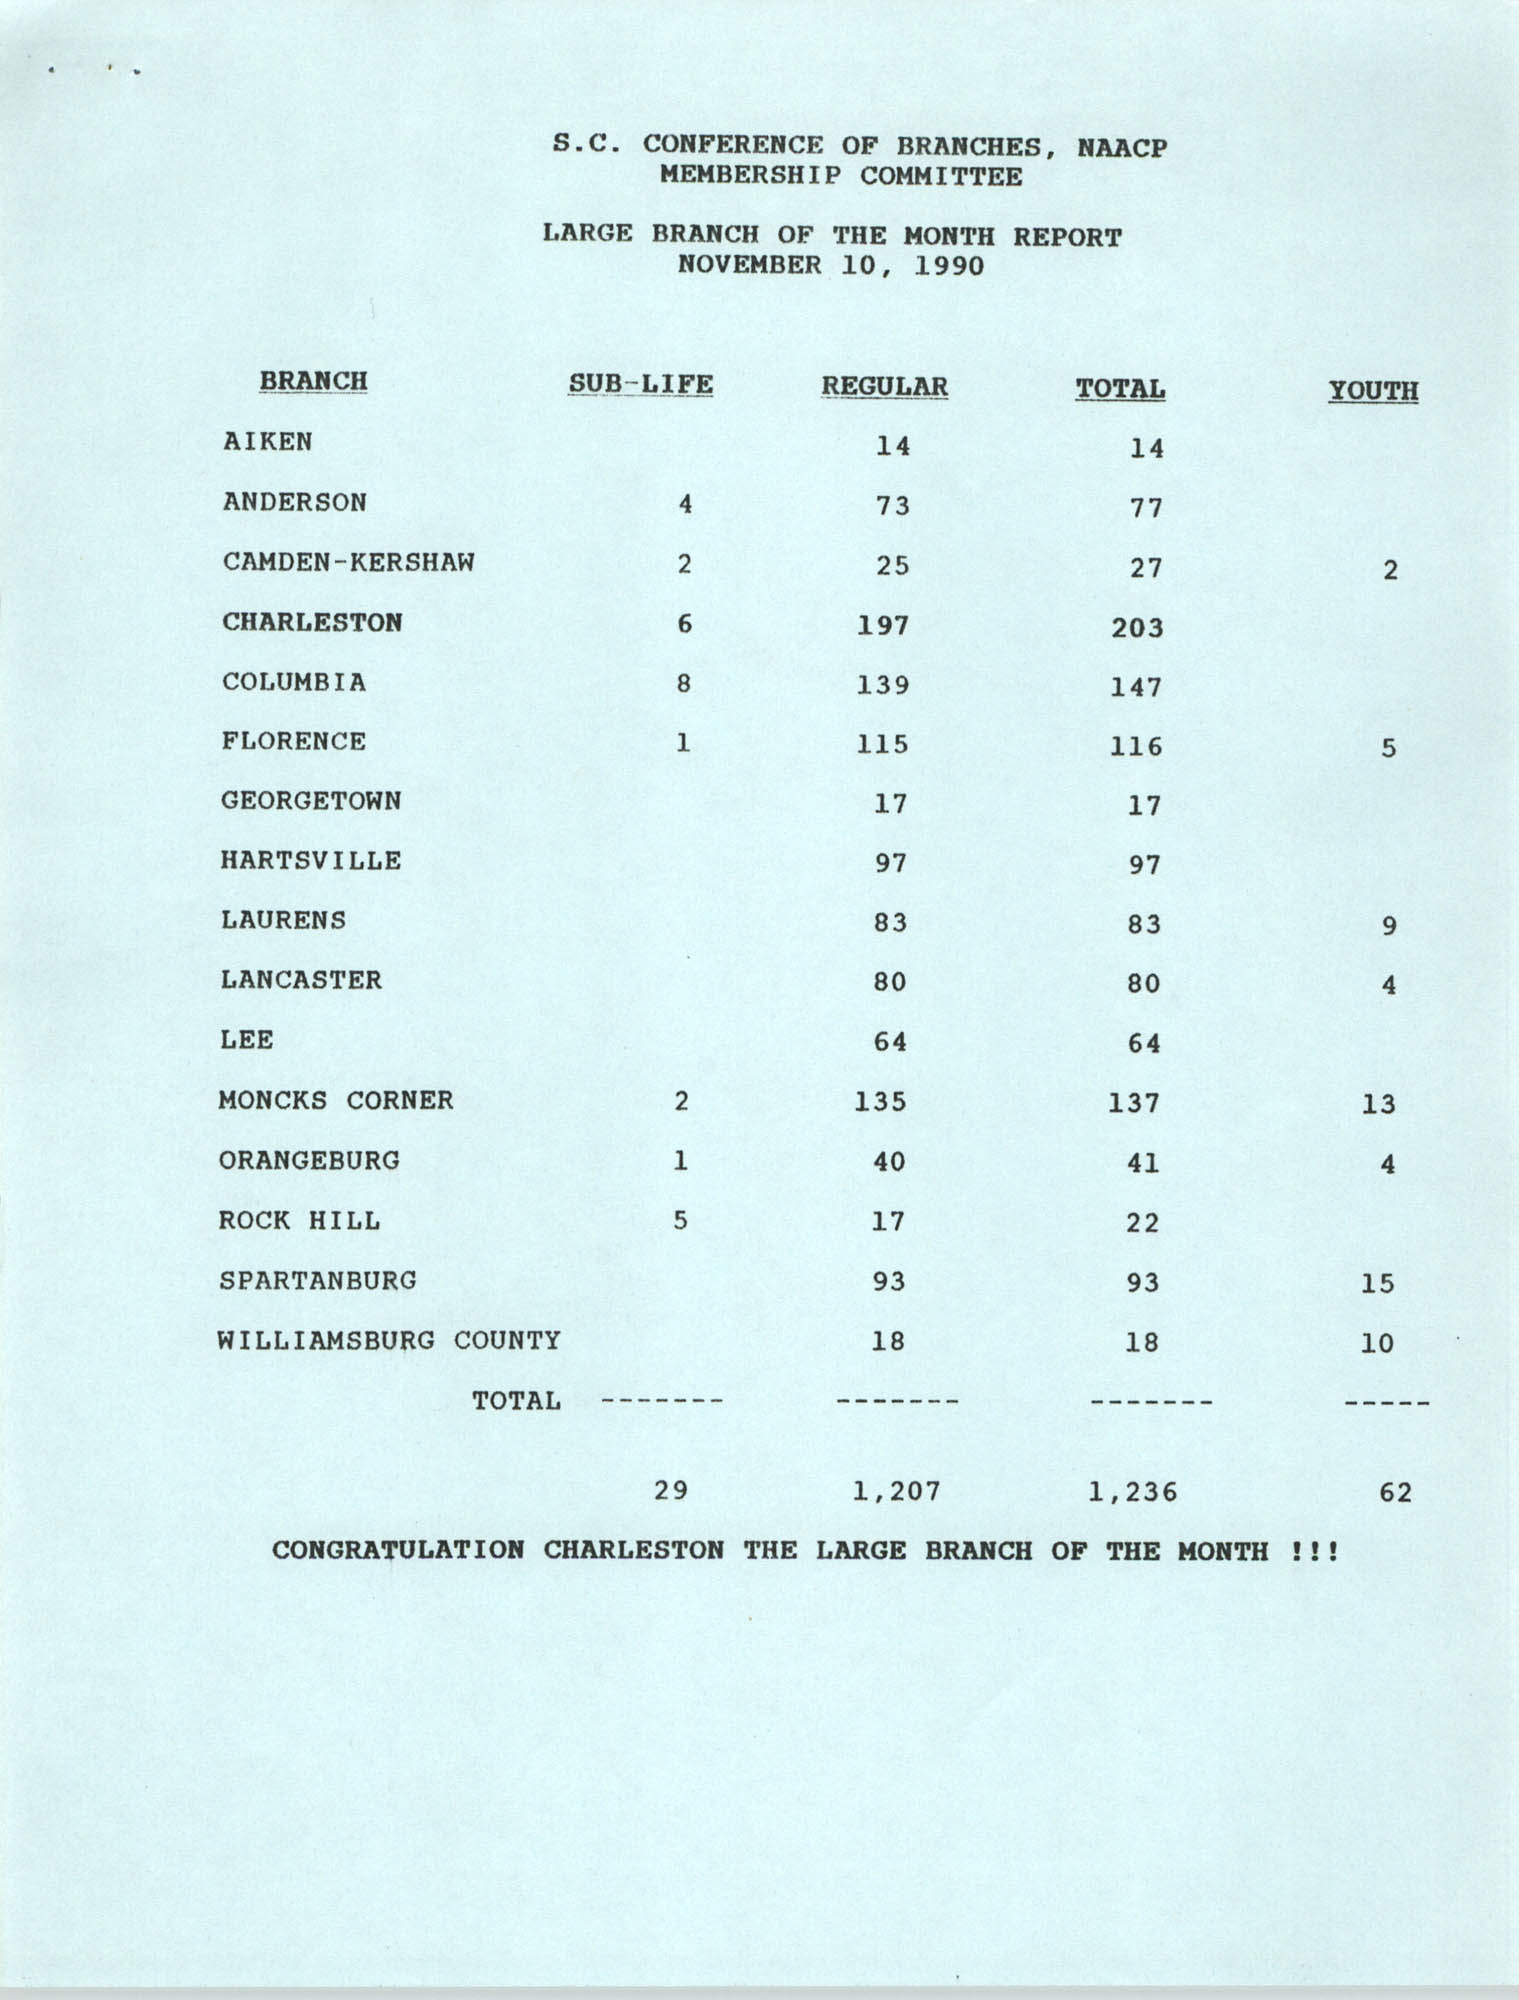 Large and Small Branch of the Month Reports, South Carolina Conference of Branches of the NAACP, November 10, 1990